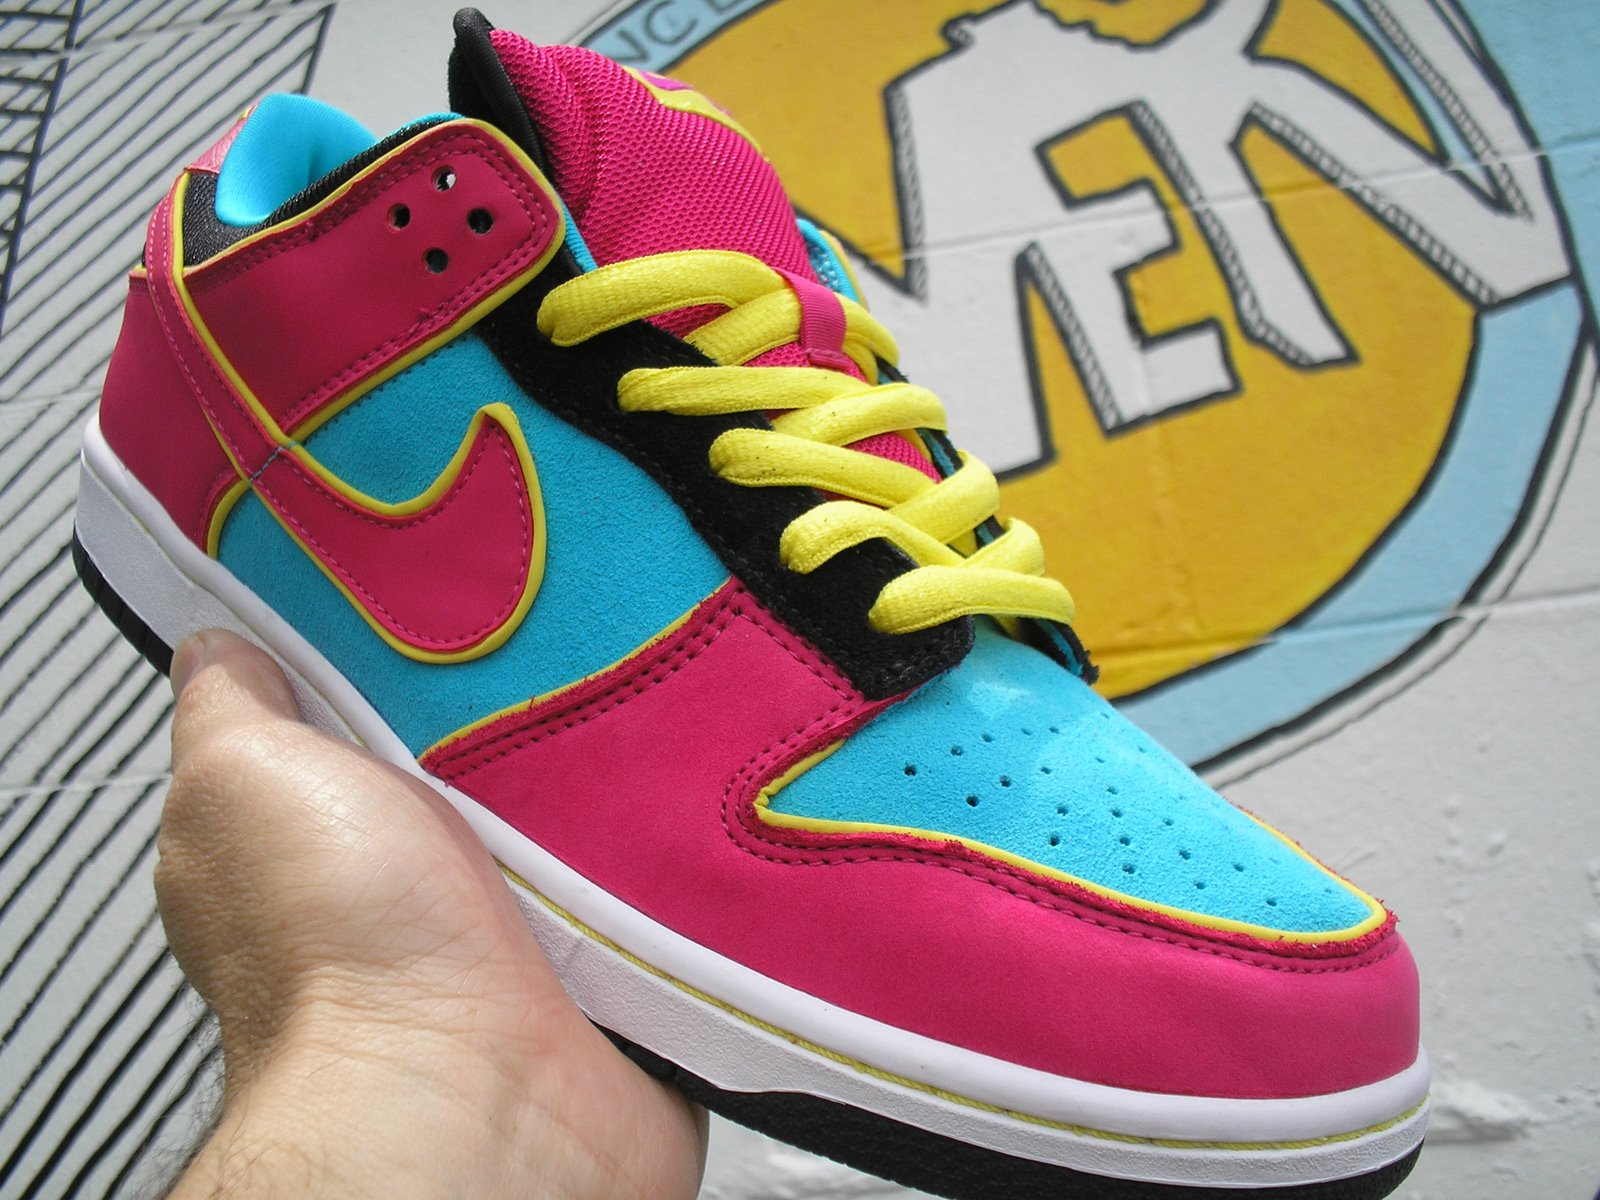 0ee9c347fad5 Chomp On this! Nike Dunk Low quick strike for MAY. MS. PACMAN. Come on.